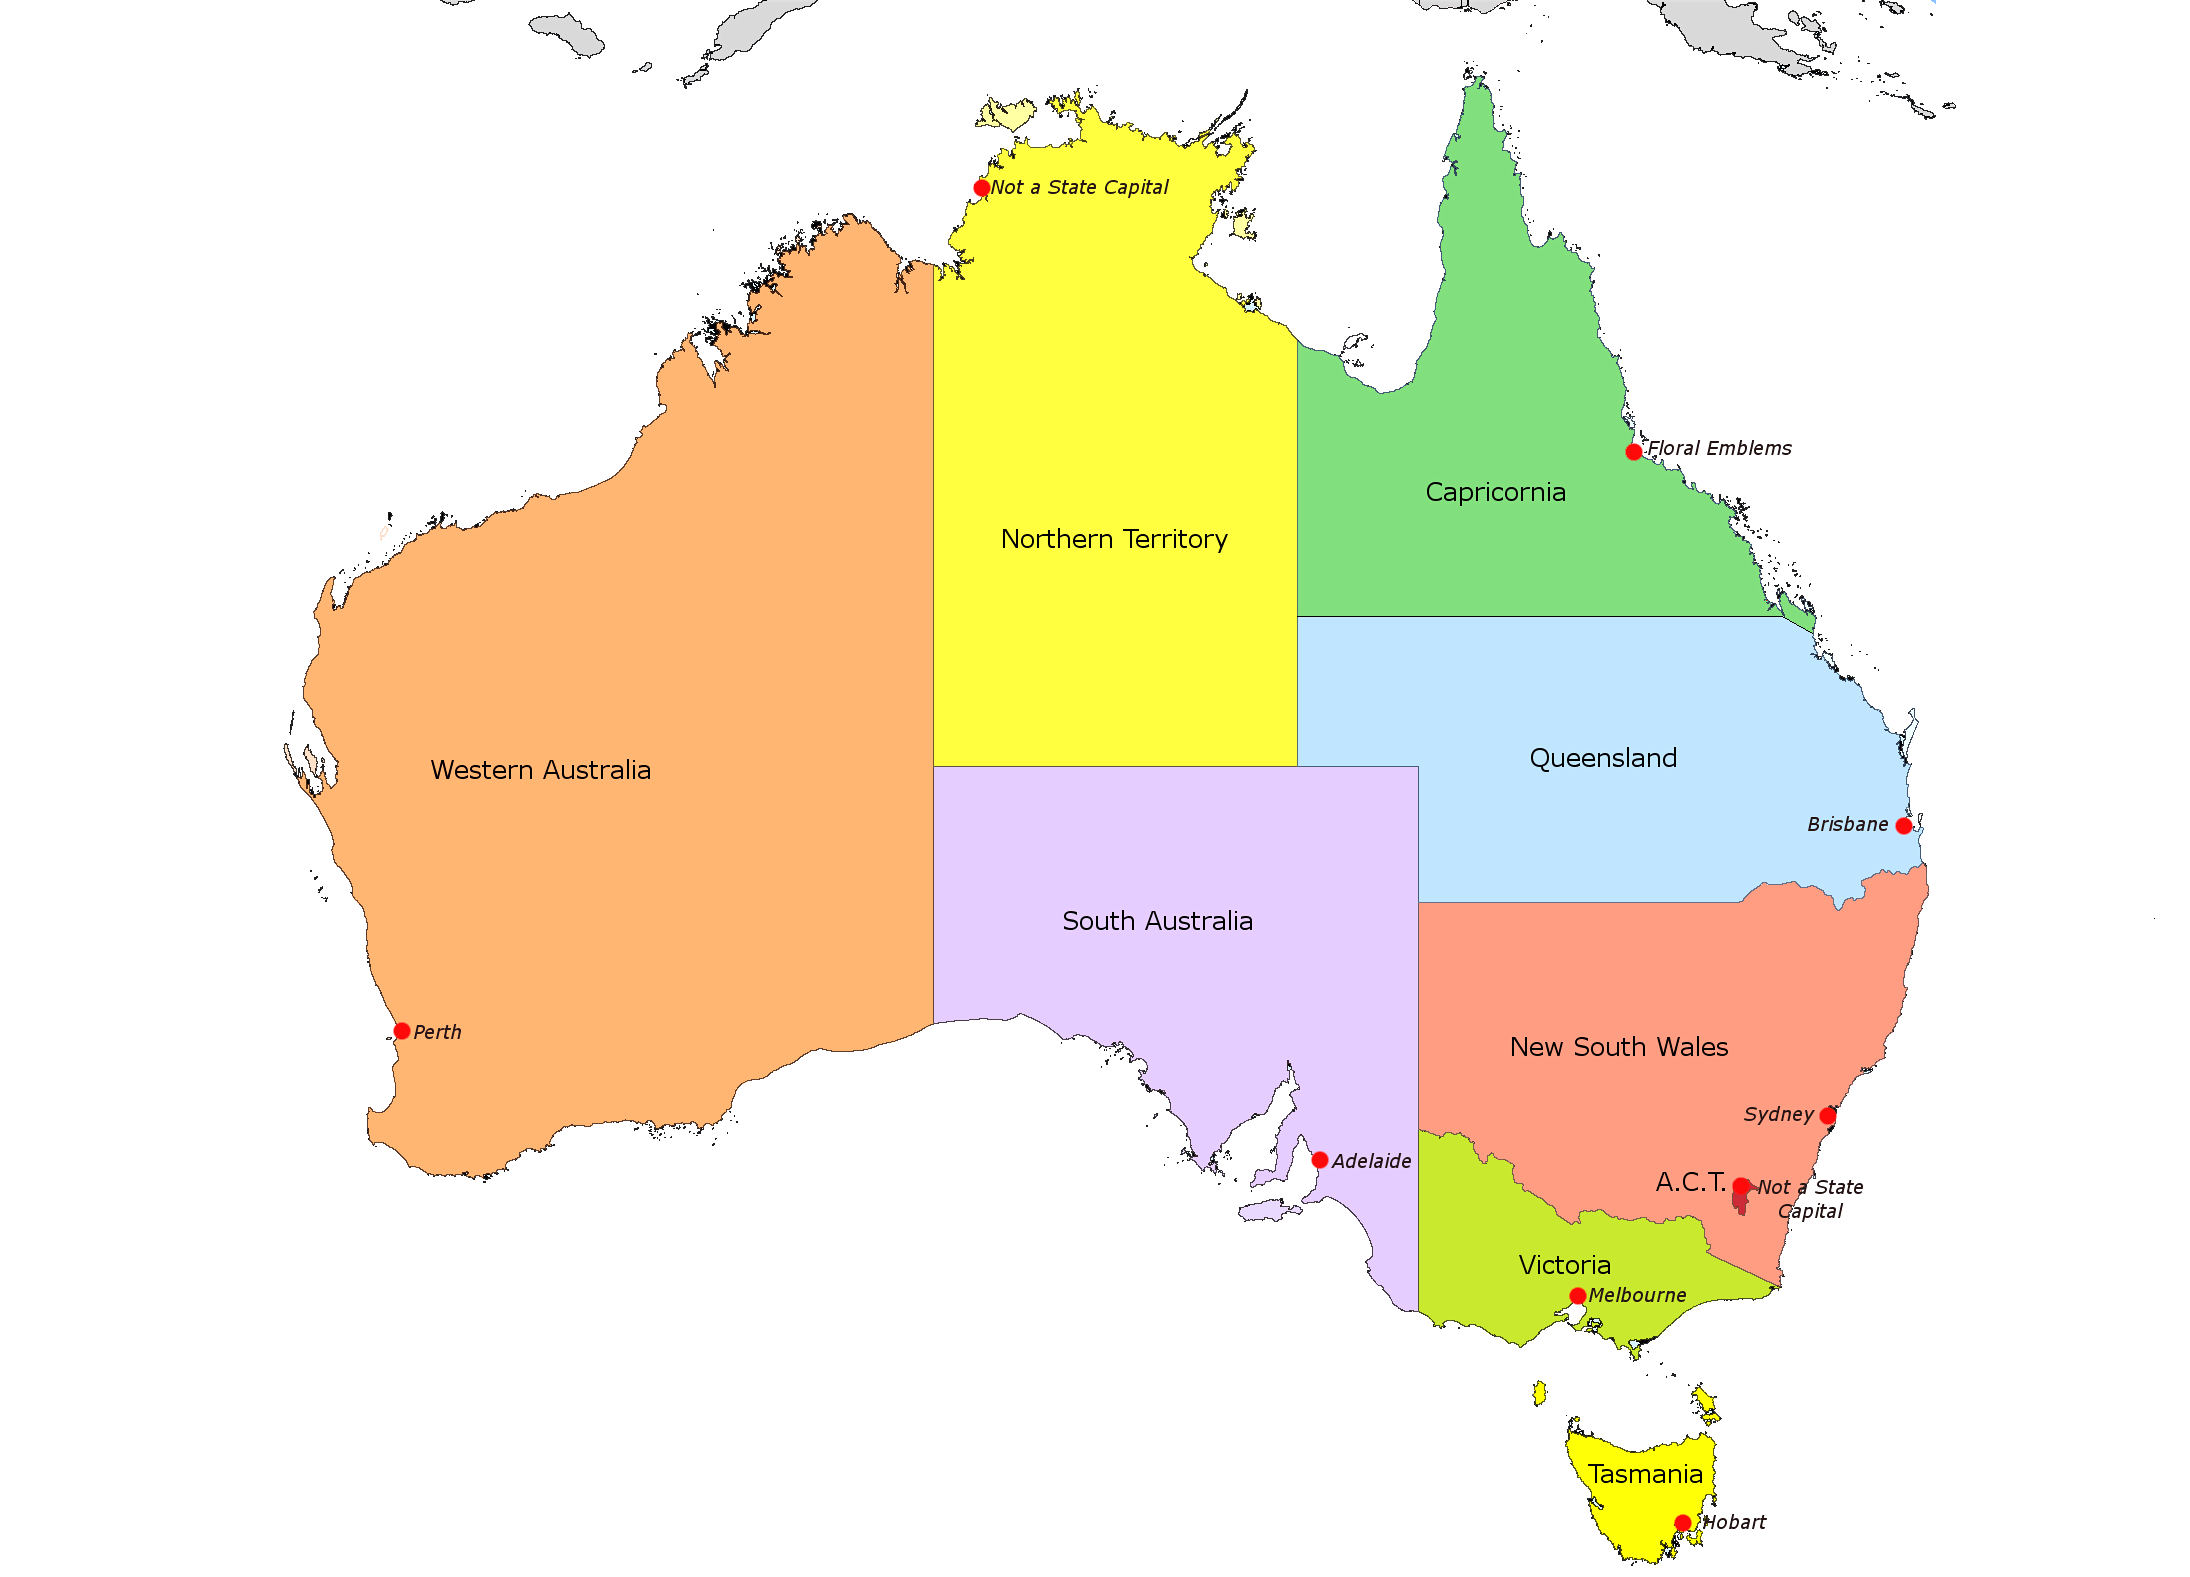 Map Of Australia Showing Capital Cities.Map Of Australia And Capital Cities Basic Outline Maps